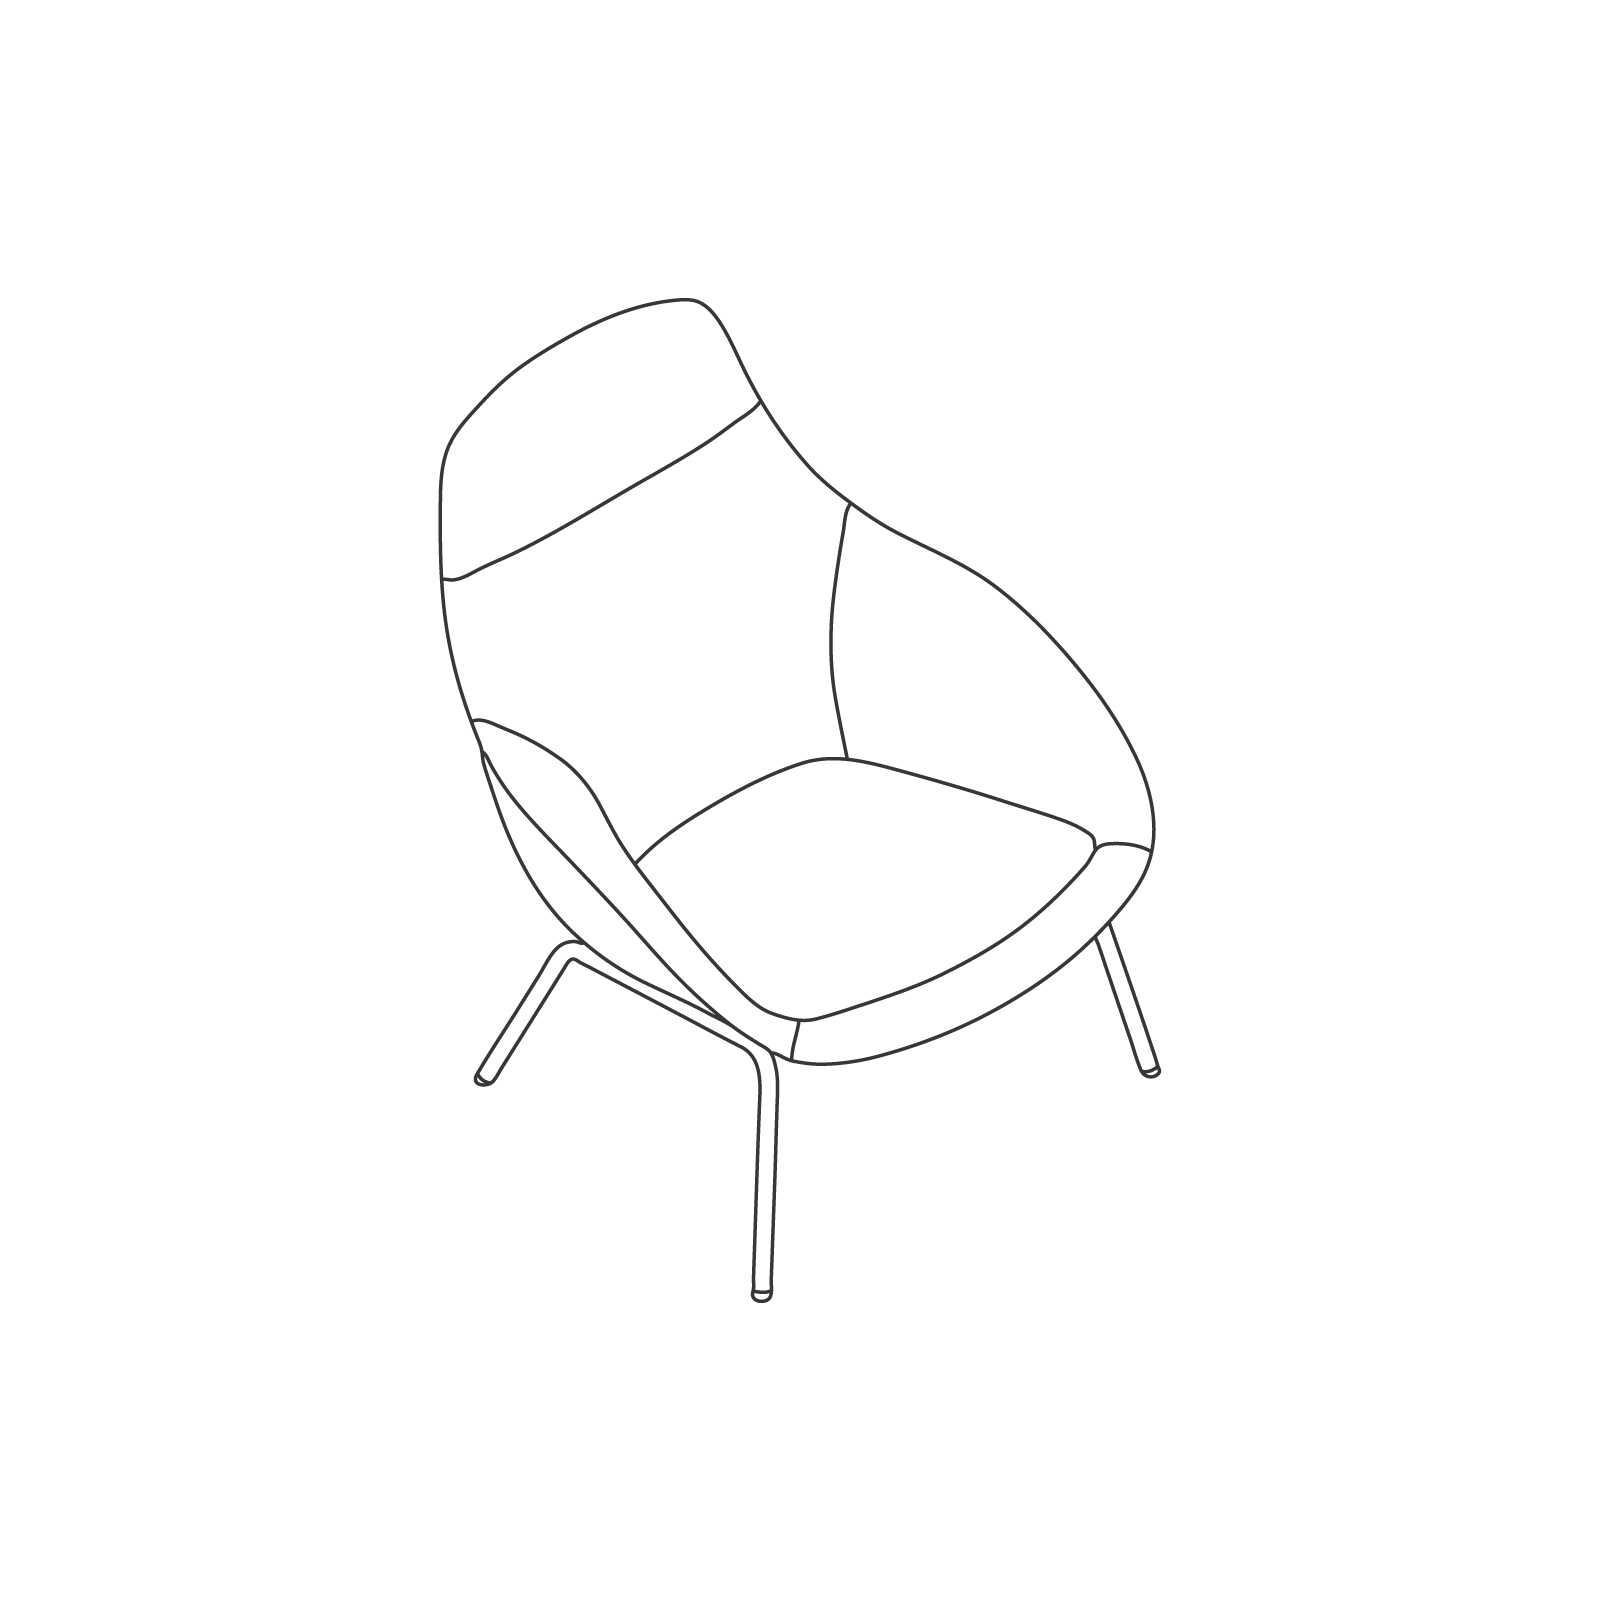 A line drawing of Always Lounge Chair–4-Leg Base.